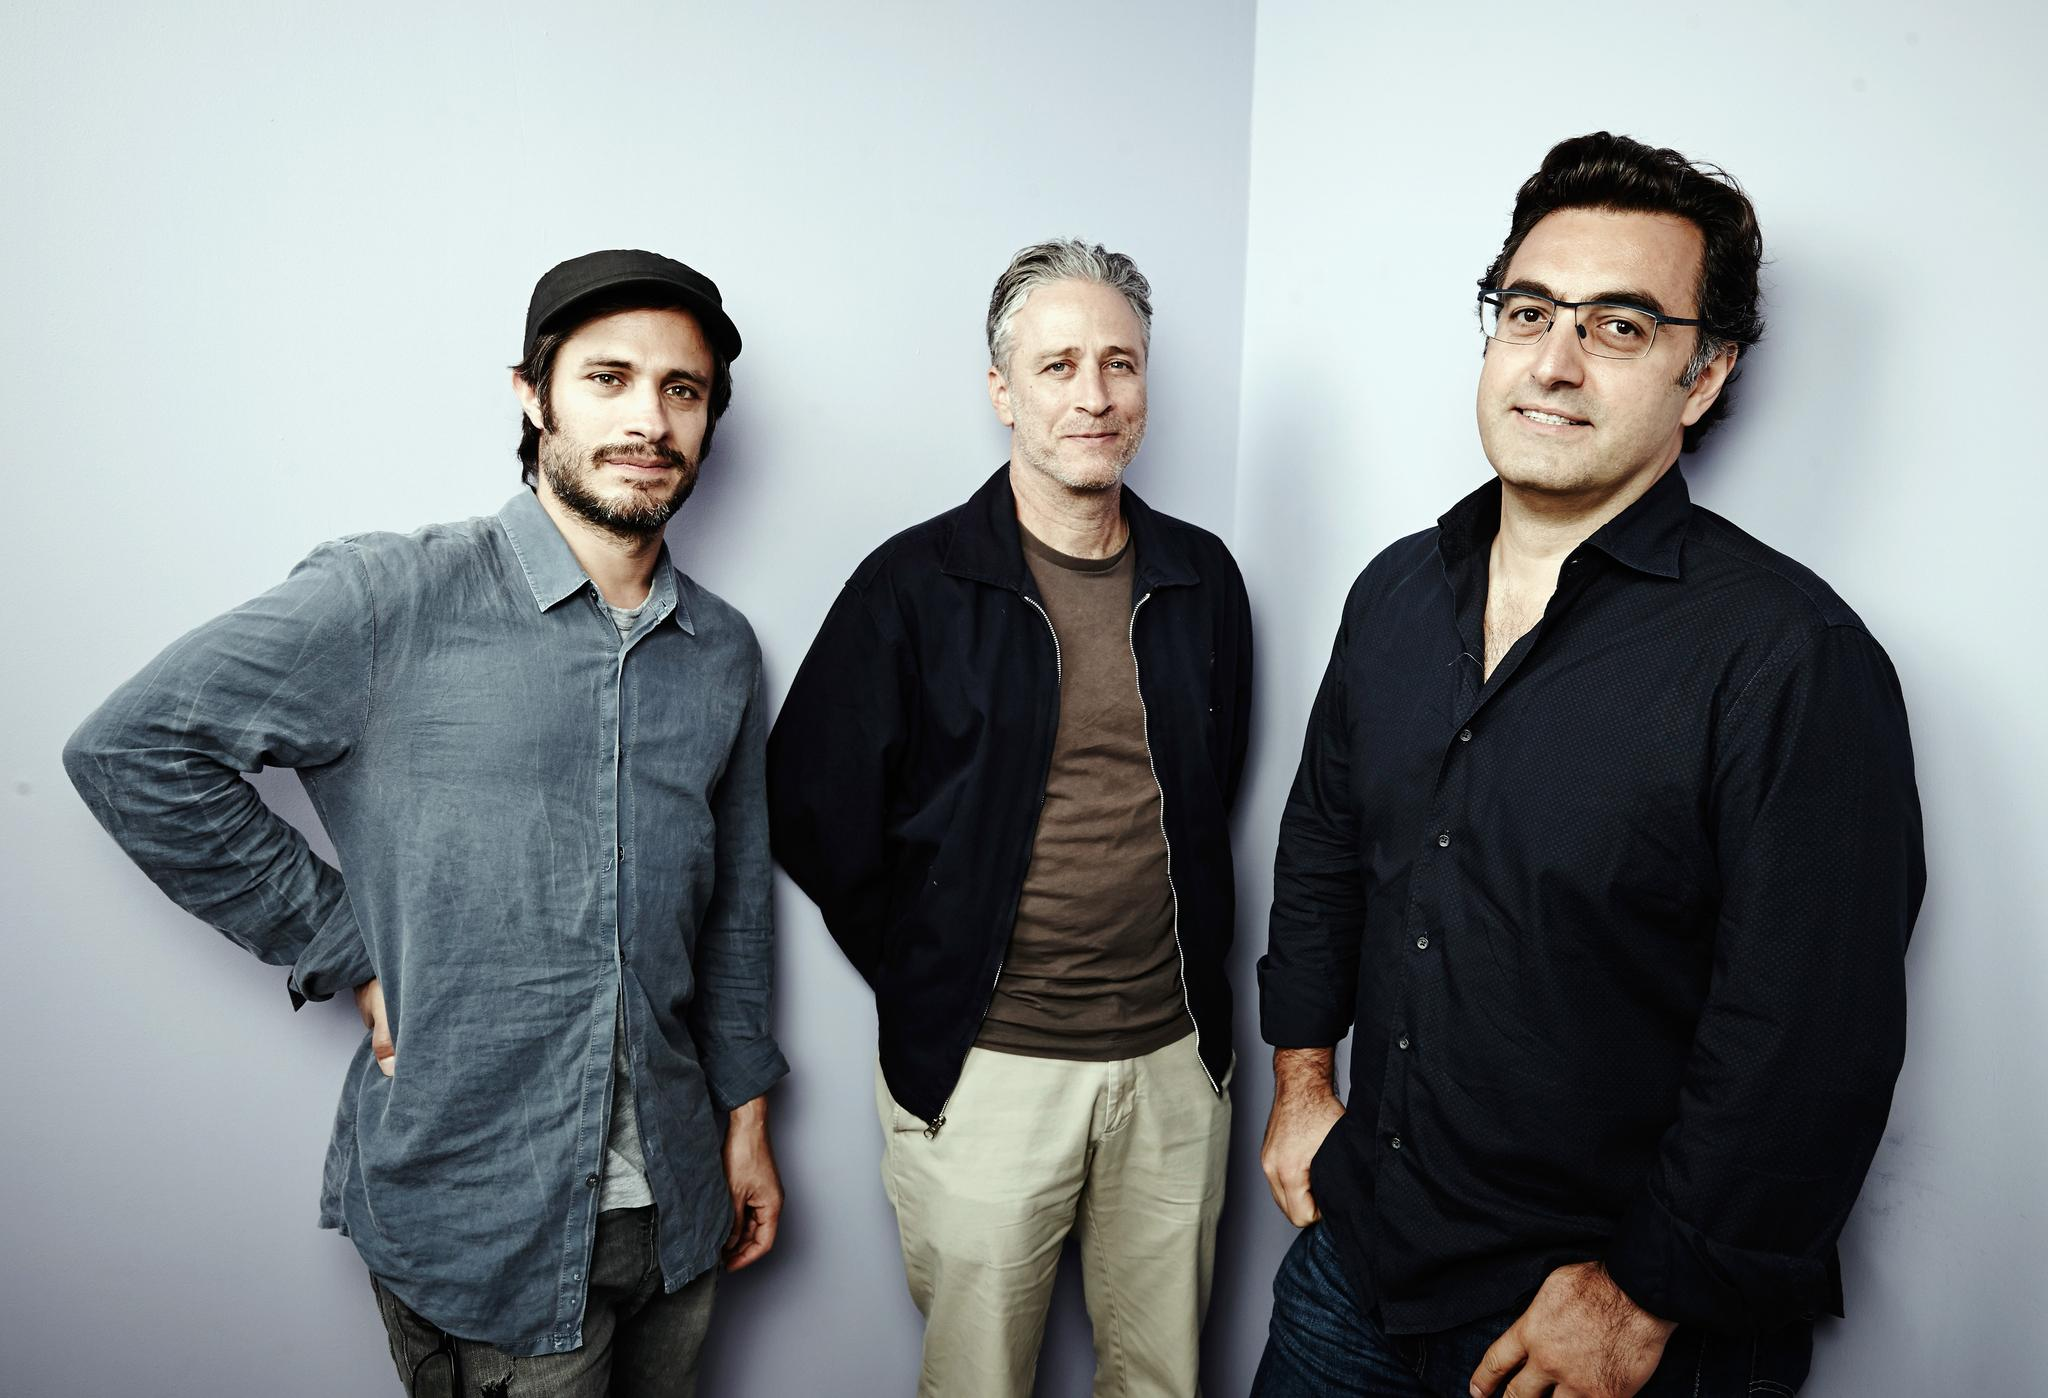 Jon Stewart Explains Why He Chose Gael Garcia Bernal To Play an Iranian Journalist in 'Rosewater'